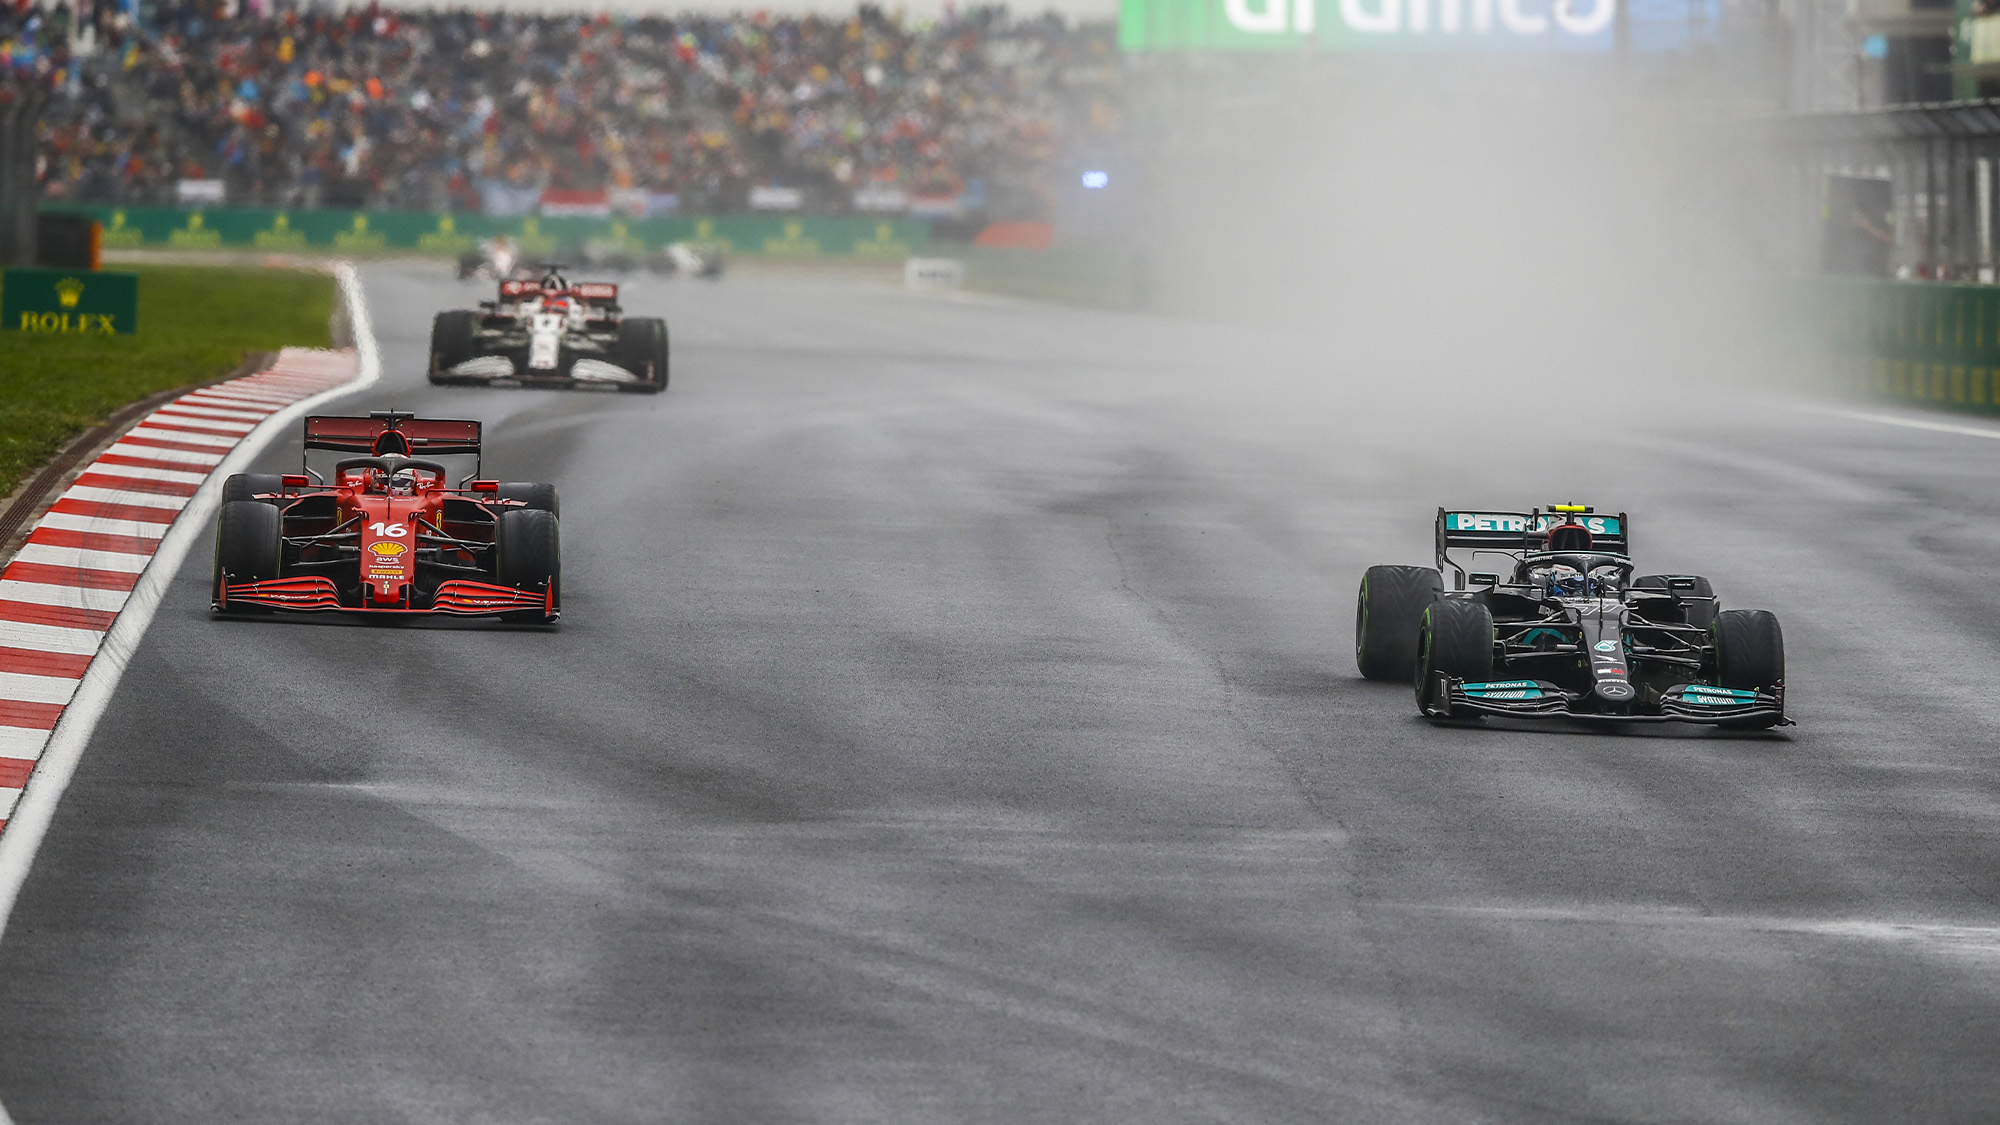 Valtteri Bottas passes Charles Leclerc for the lead of the 2021 Tuyrkish Grand Prix